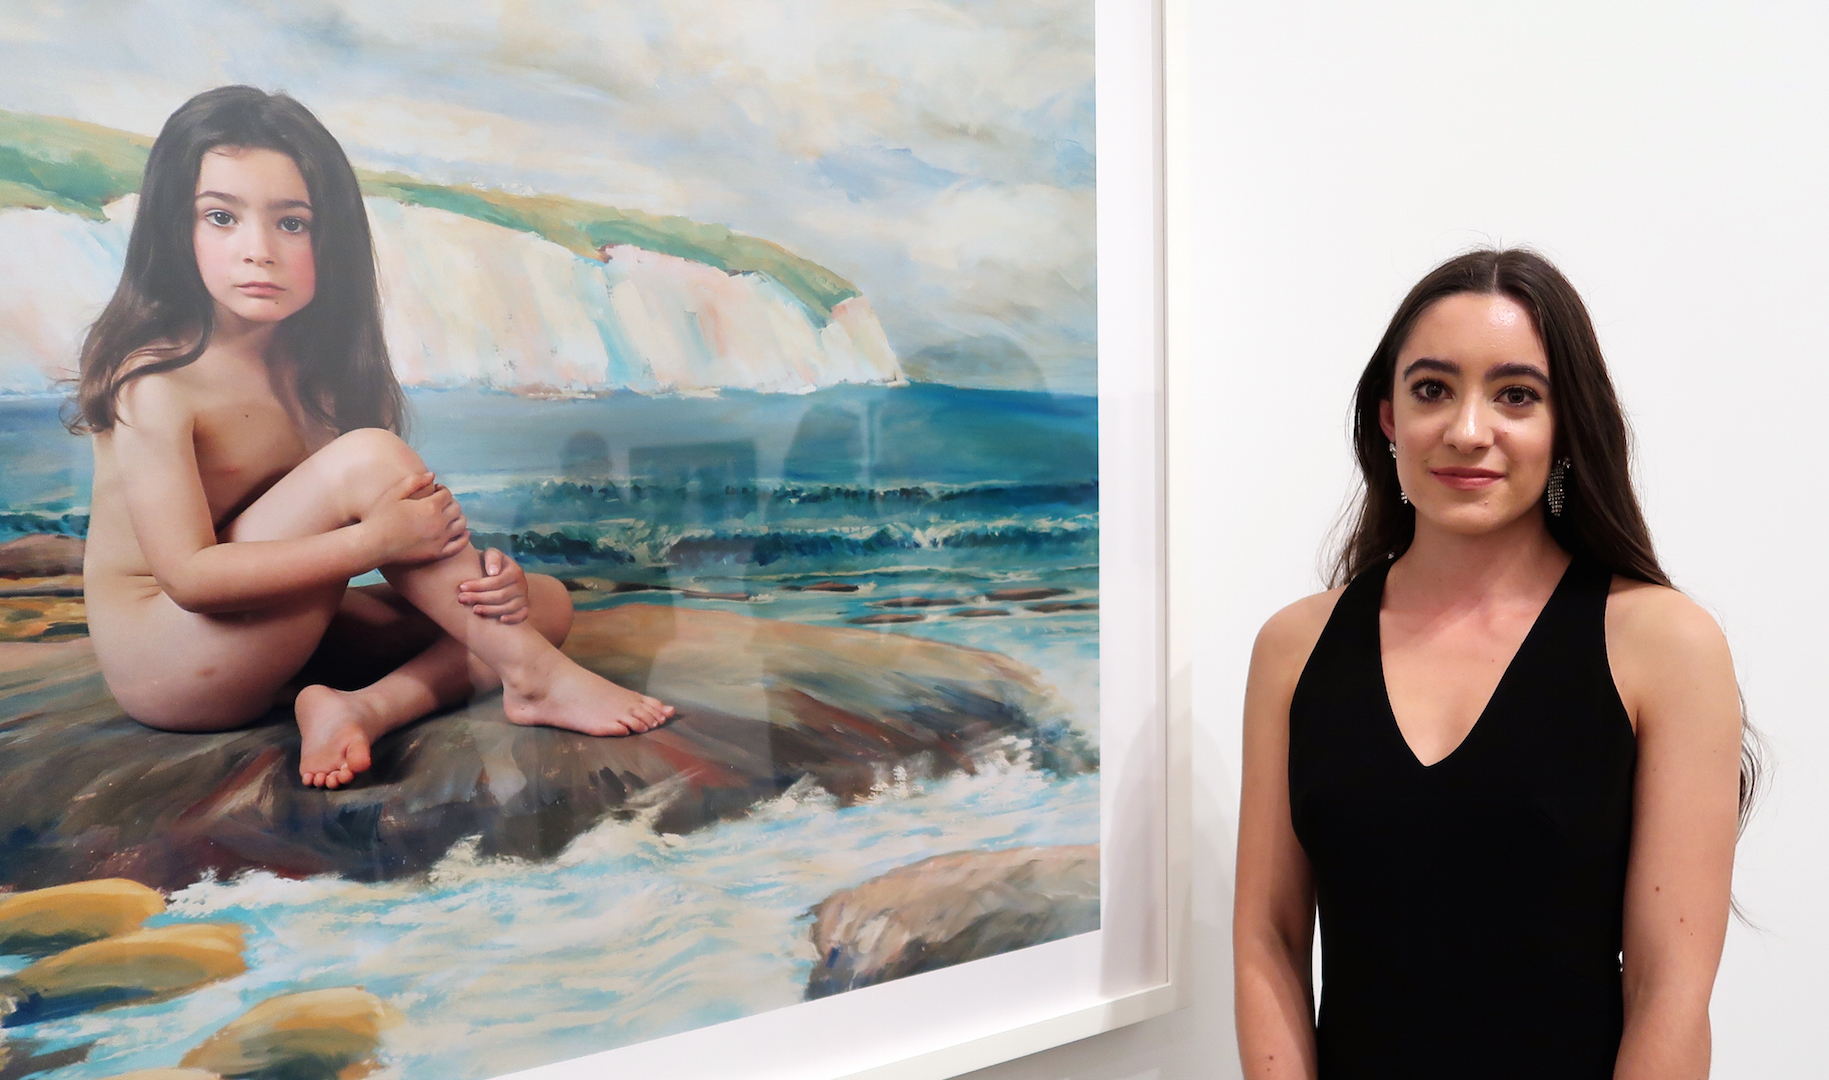 Her mother's muse: Looking back on a photograph that shocked Australia